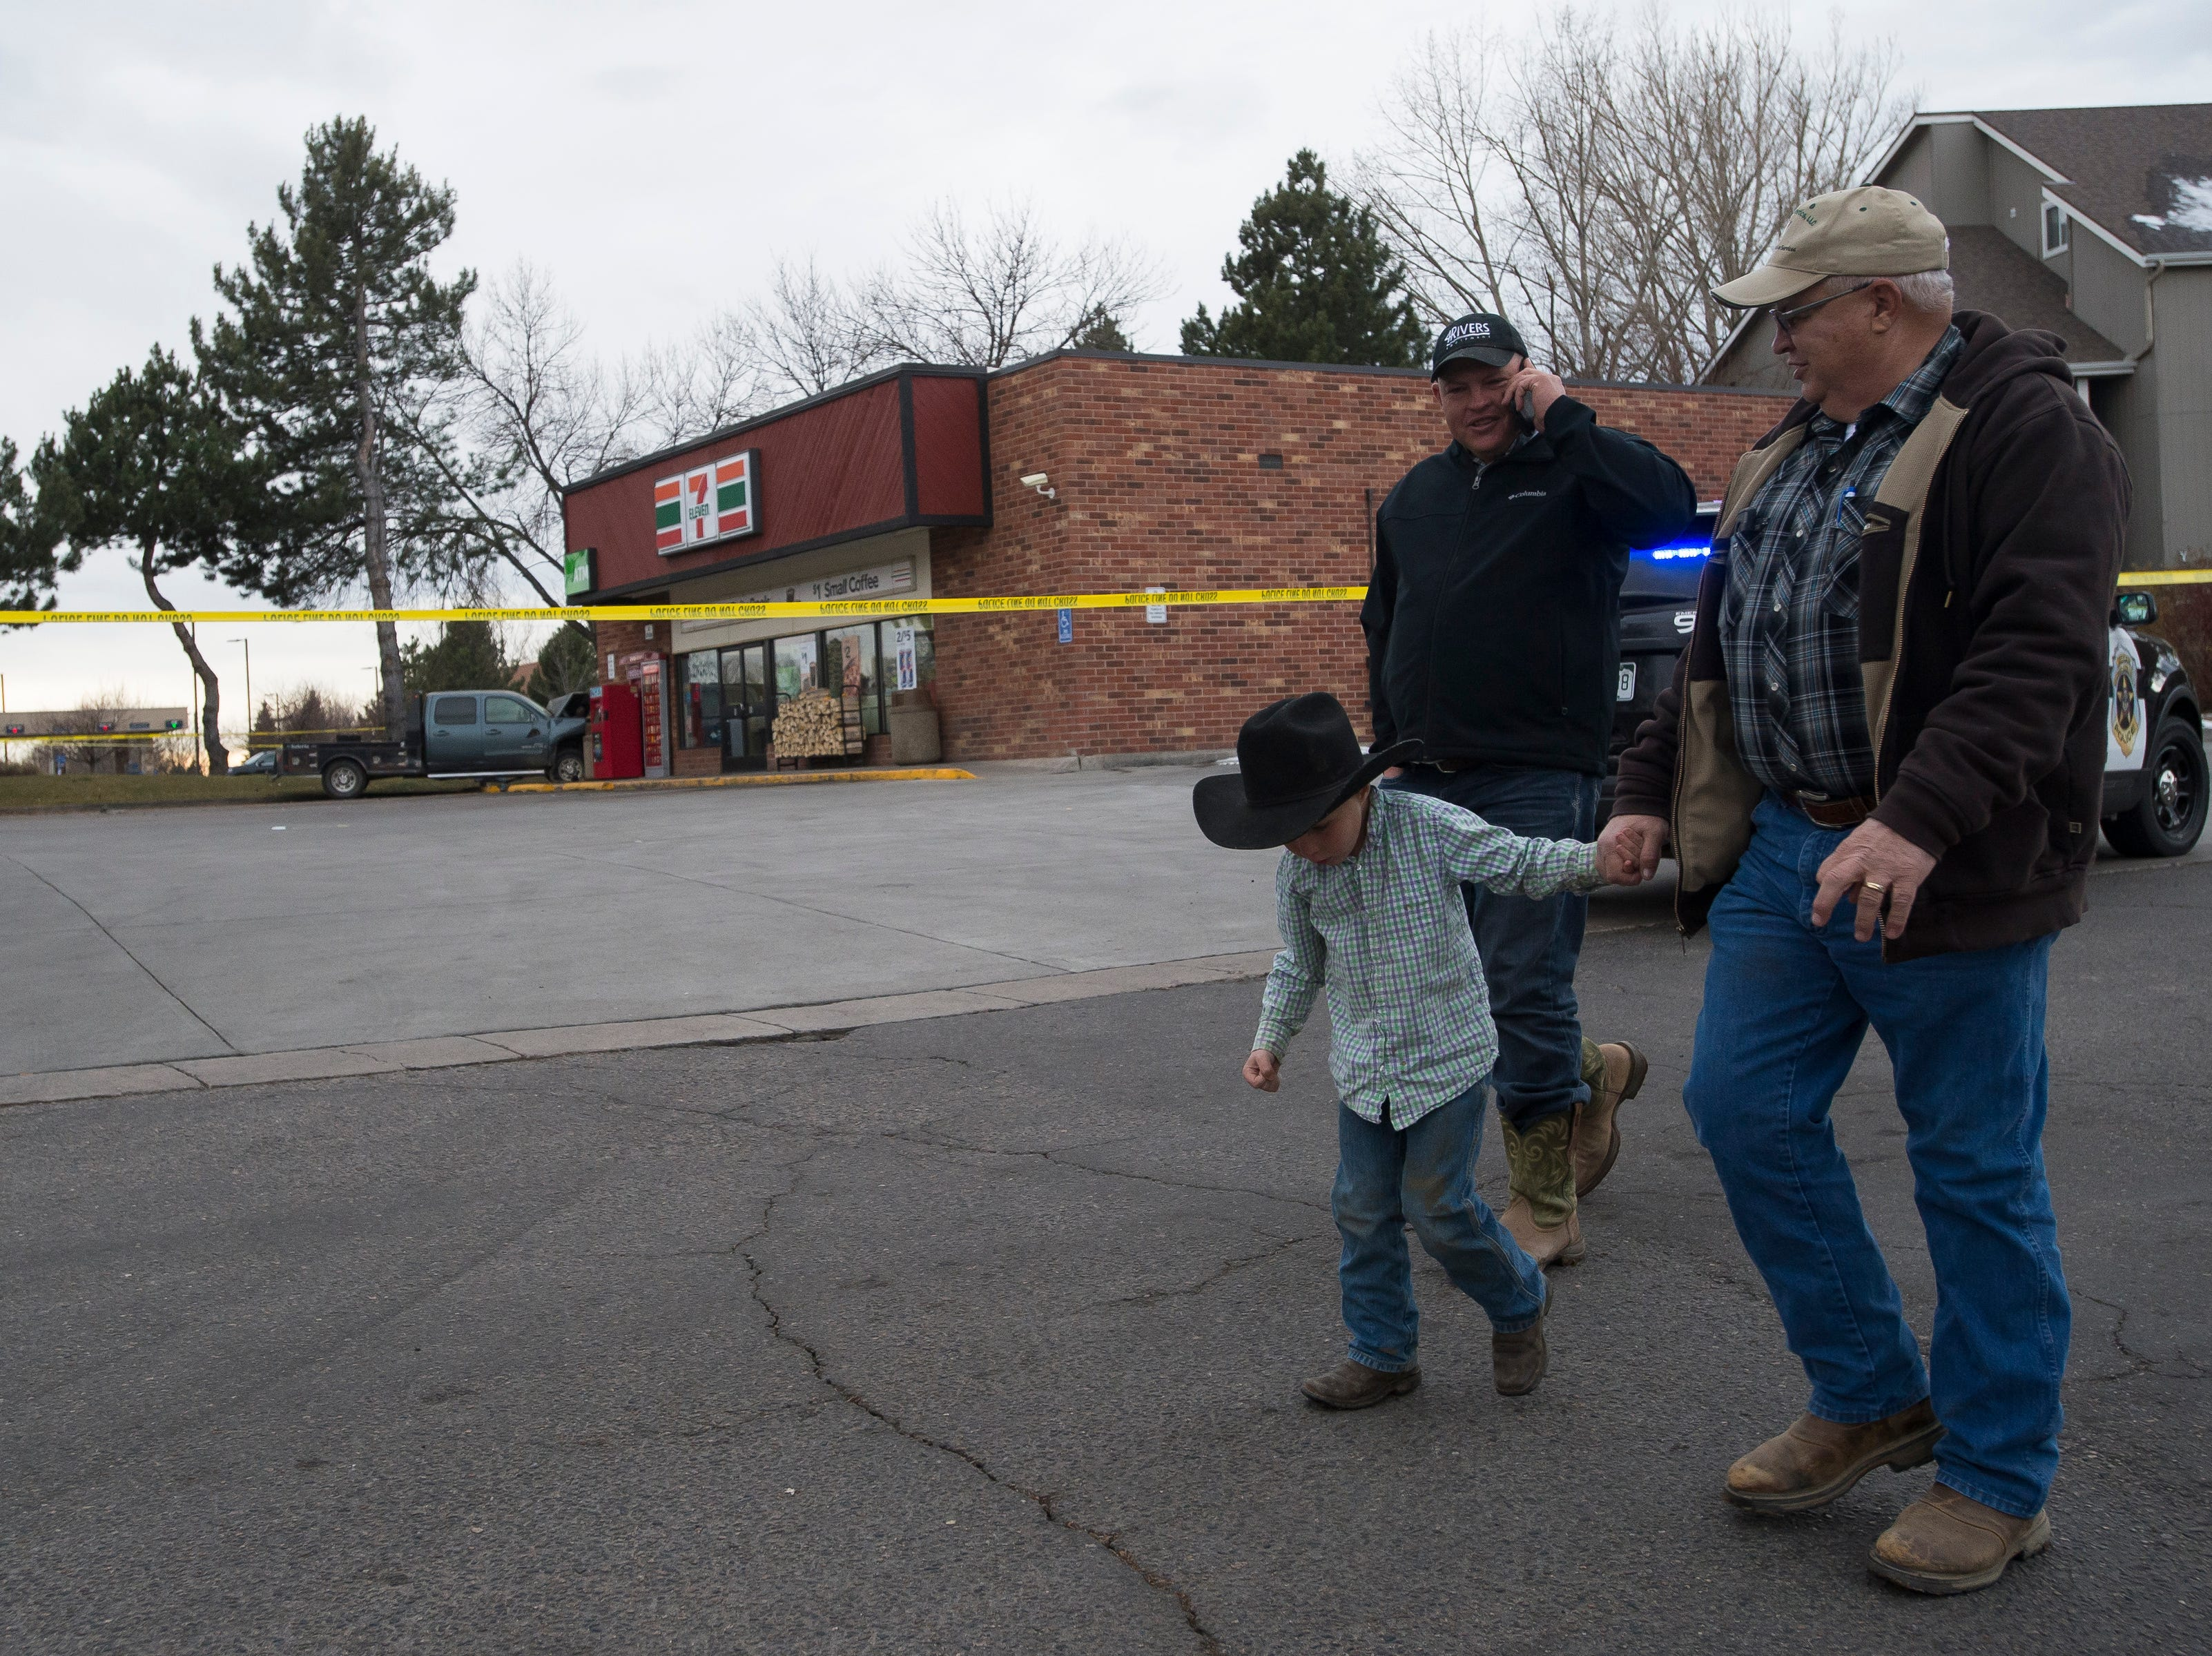 Dallas Schleining, left, talks on the phone while walking with his son Duke, 5, and his father Jim, past Dallas' truck that was stolen and involved in a crash with multiple fatalities, and then crashed into the corner of a gas station on Thursday, Nov. 22, 2018, at the intersection of East Harmony Road and East Boardwalk Drive in Fort Collins, Colo.